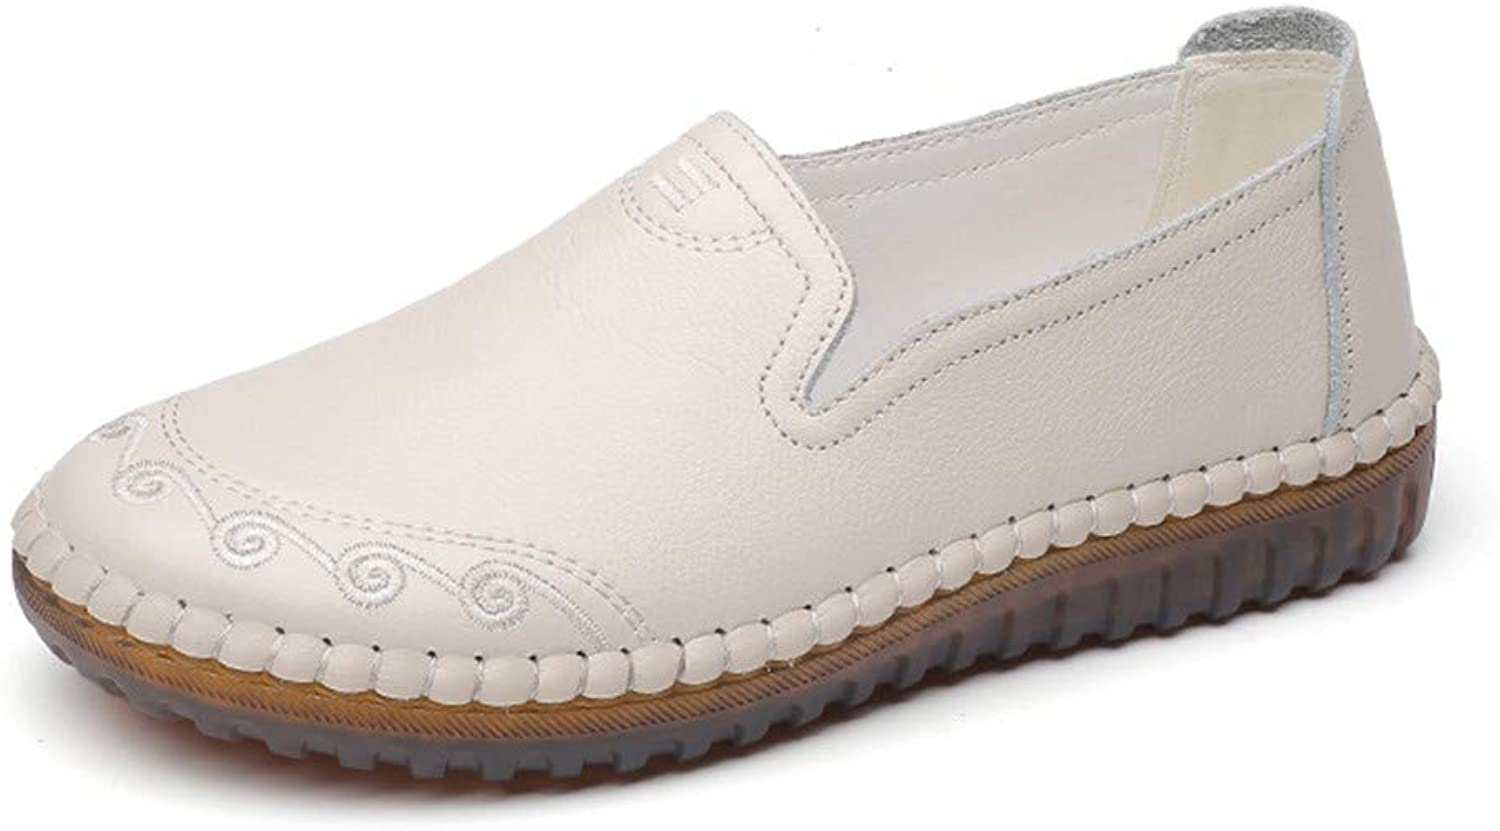 ProDIgal Casual Women's Genuine Leather Penny Loafers Driving Moccasins Slip-On Boat Flats shoes